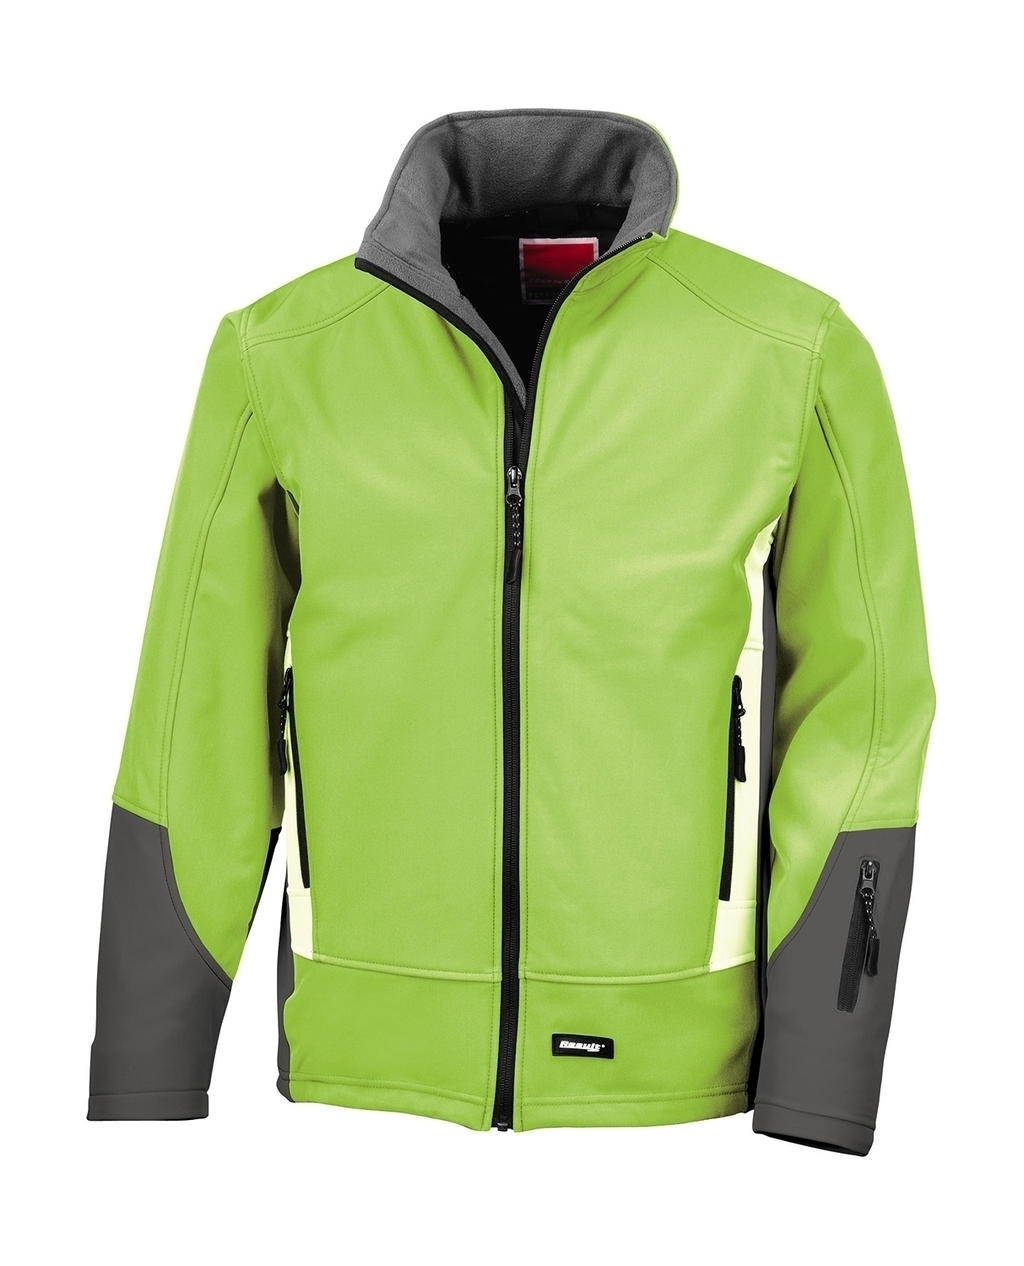 Blade Soft Shell Jacket Lime/Charcoal/Pale Grey Vert